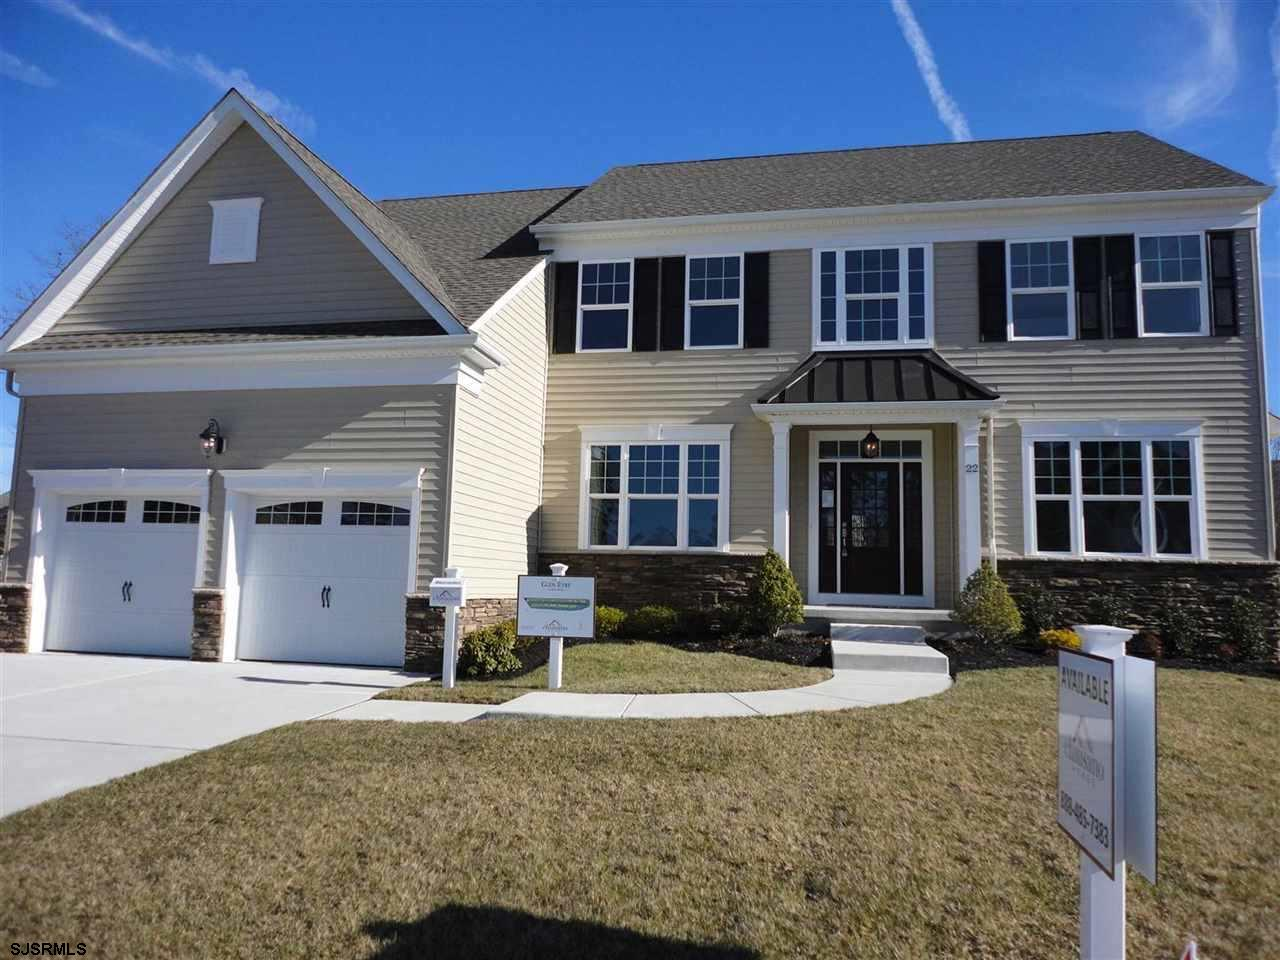 22 Monet Dr, Mays Landing, NJ 08330